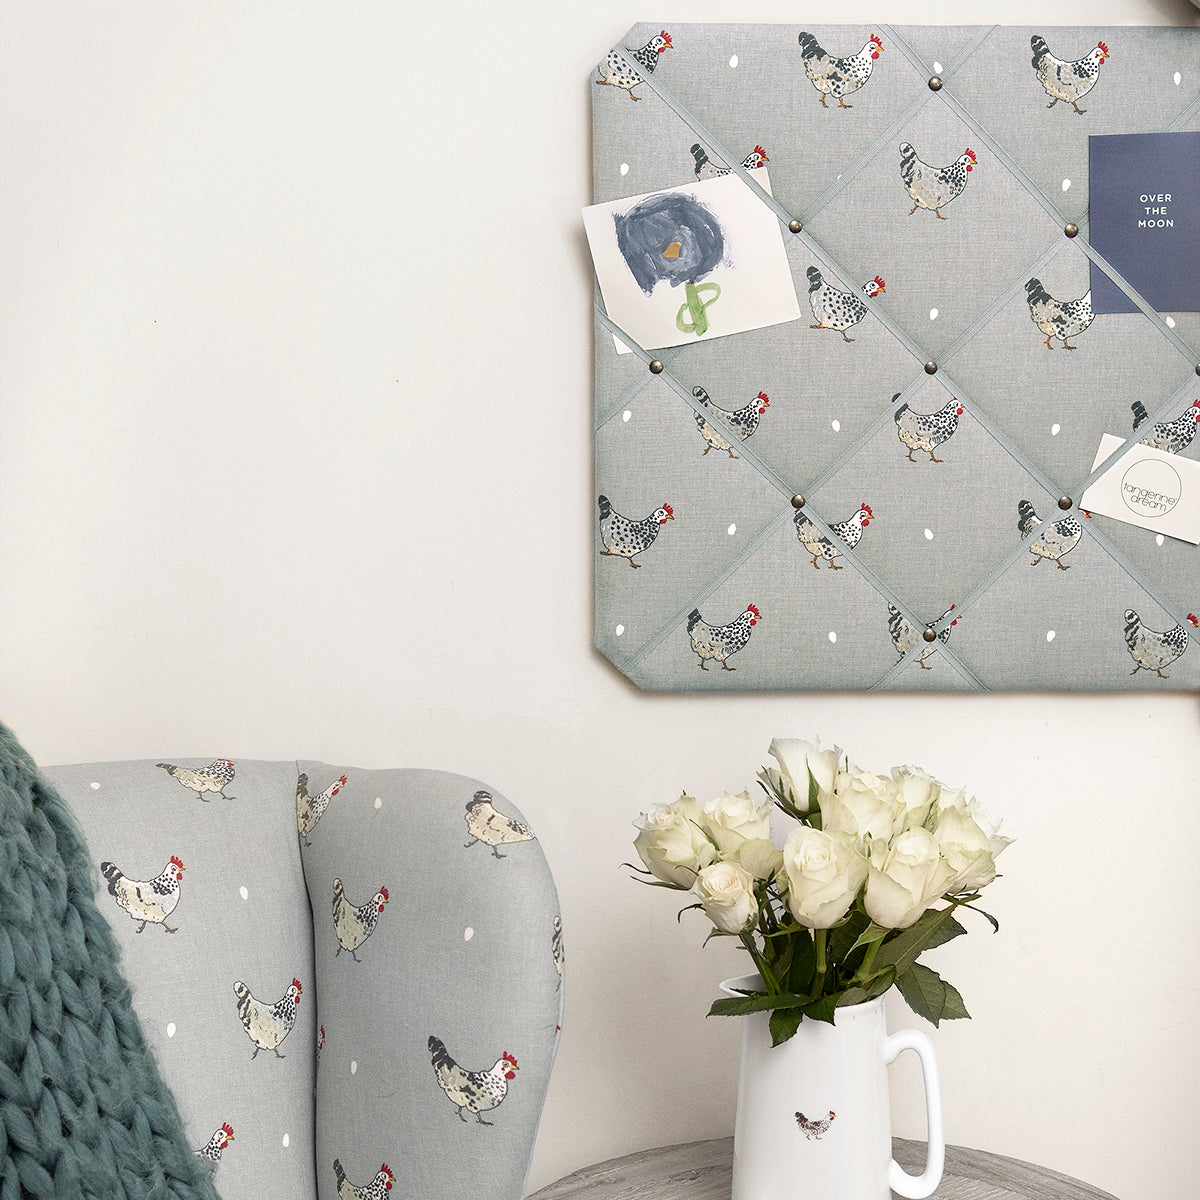 Chicken fabric by the metre, perfect for upholstery, by Sophie Allport